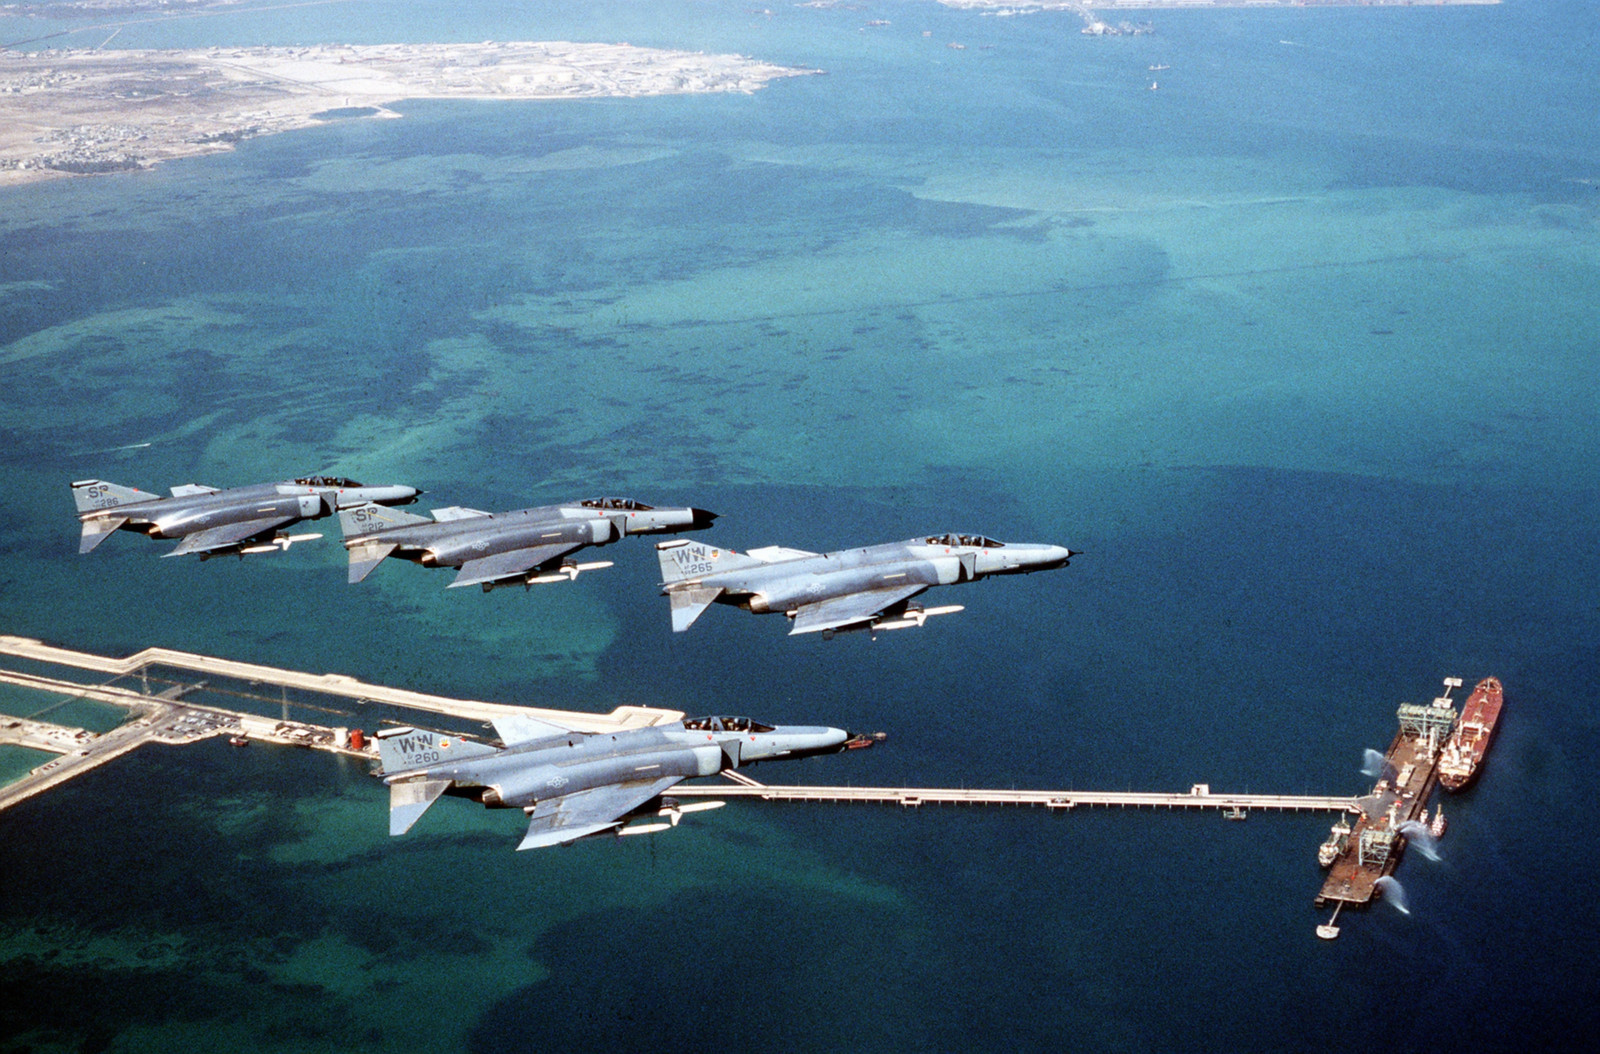 F-4Gs over Bahrain during Operation Desert Shield. US Air Force Photo